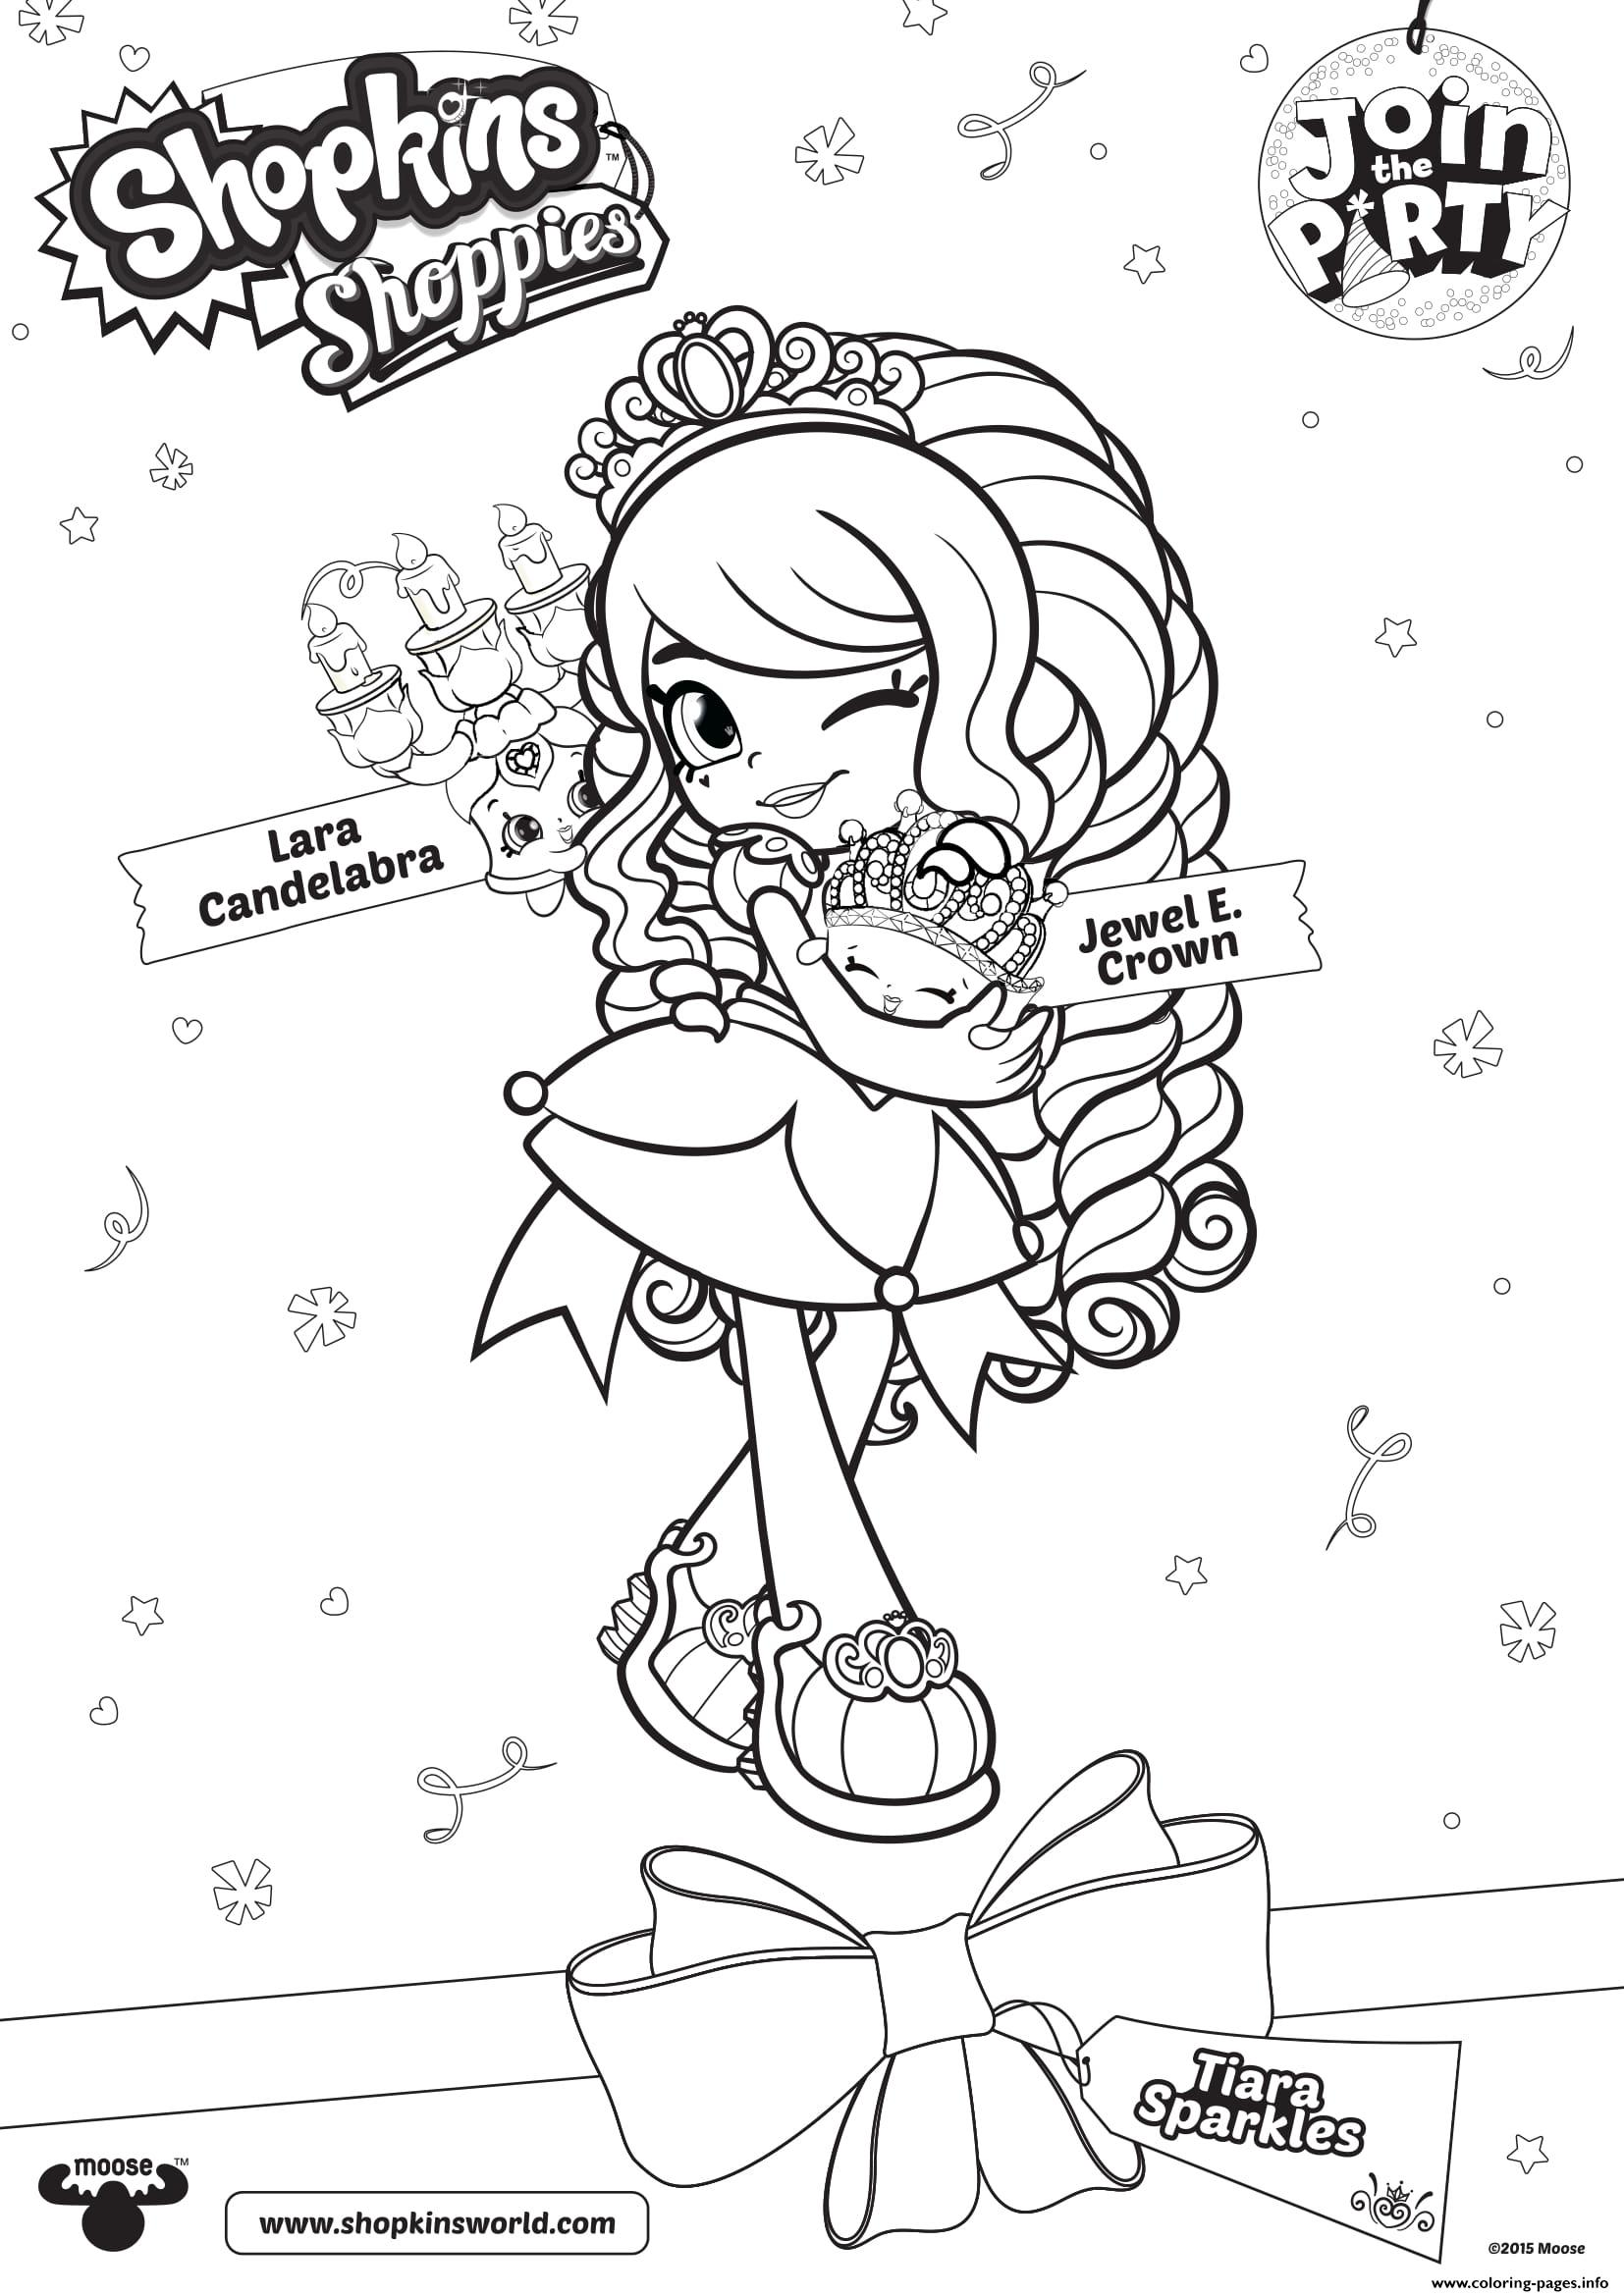 Shopkins Shoppies Join The Party Lara Candelabra Jewel Crown Coloring Pages Printable